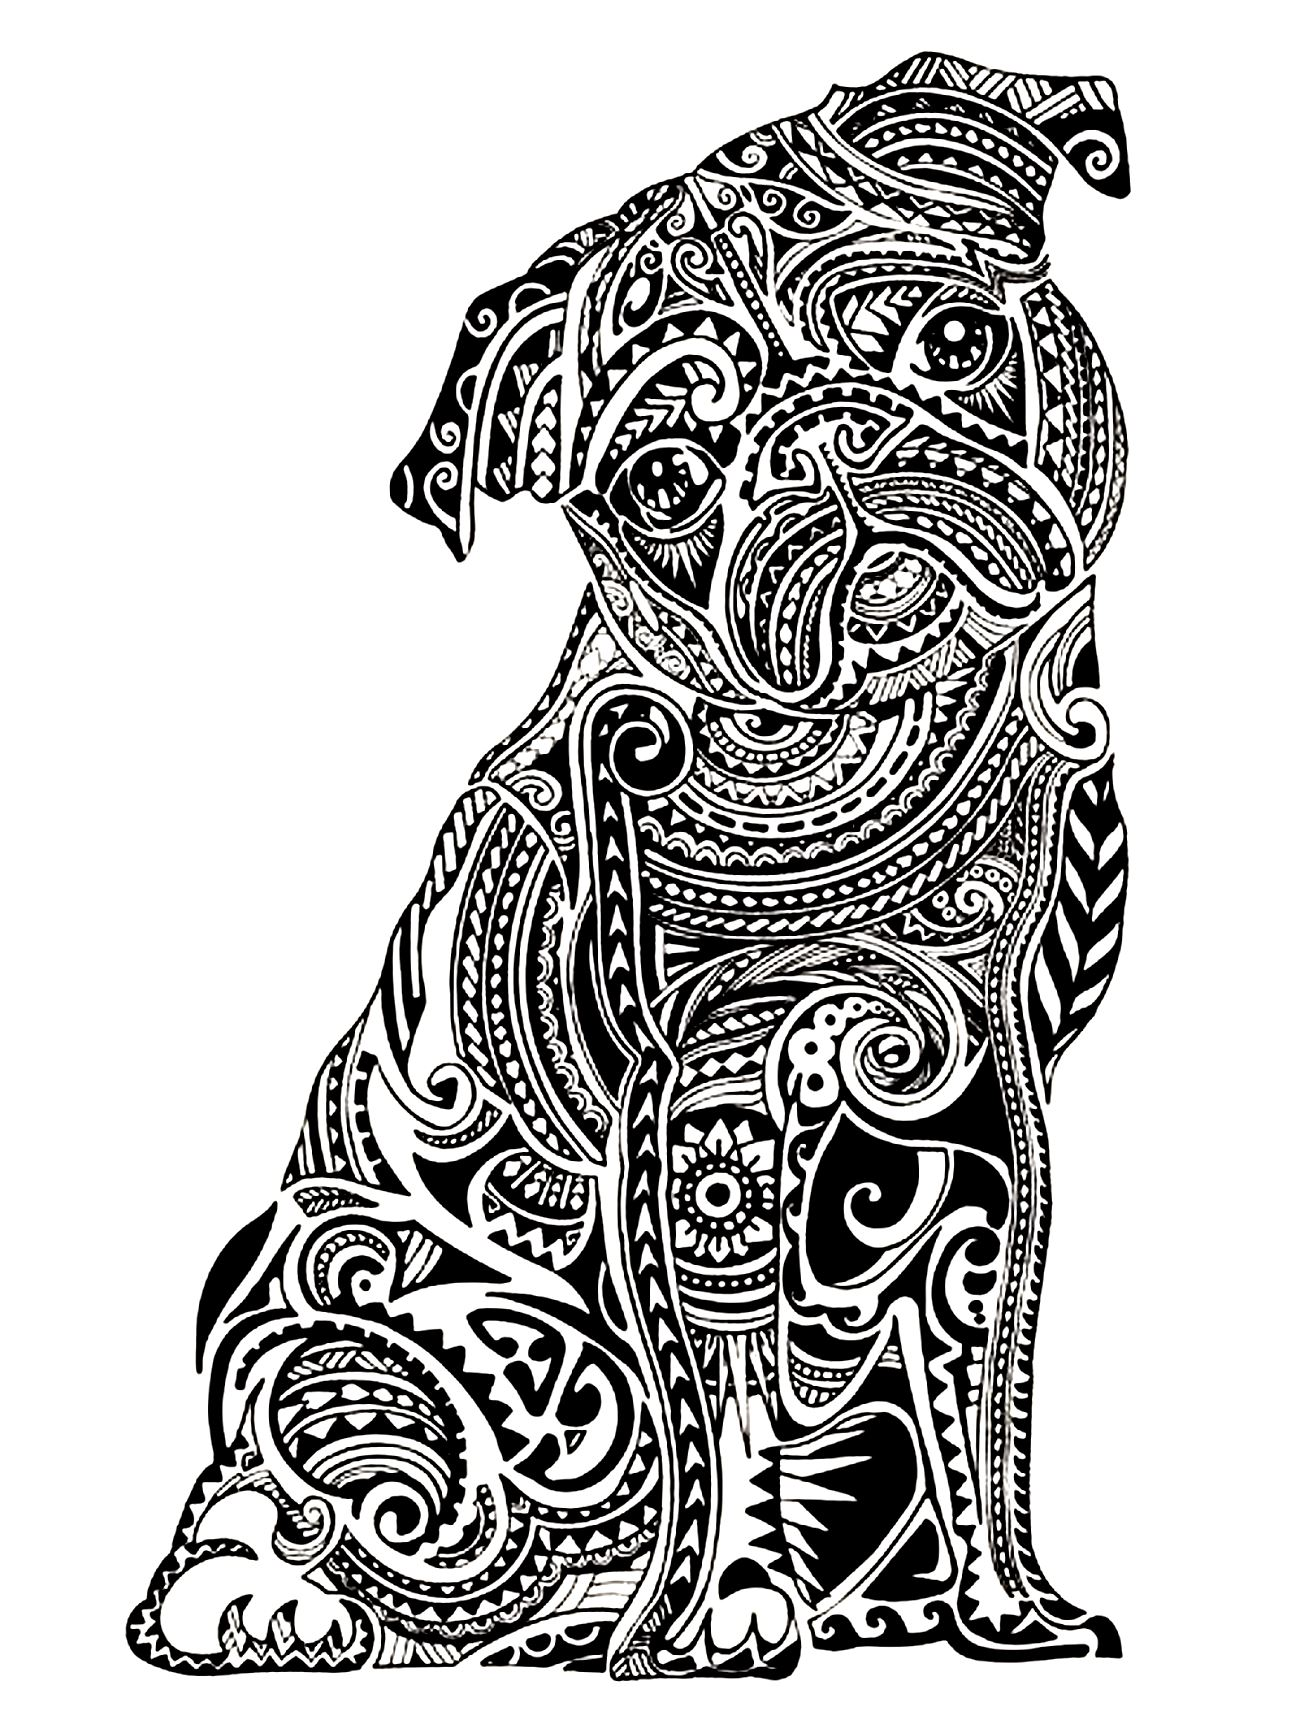 Complicated Elephant Coloring Pages. coloring adult difficult little buldog Dogs  Coloring pages for adults JustColor